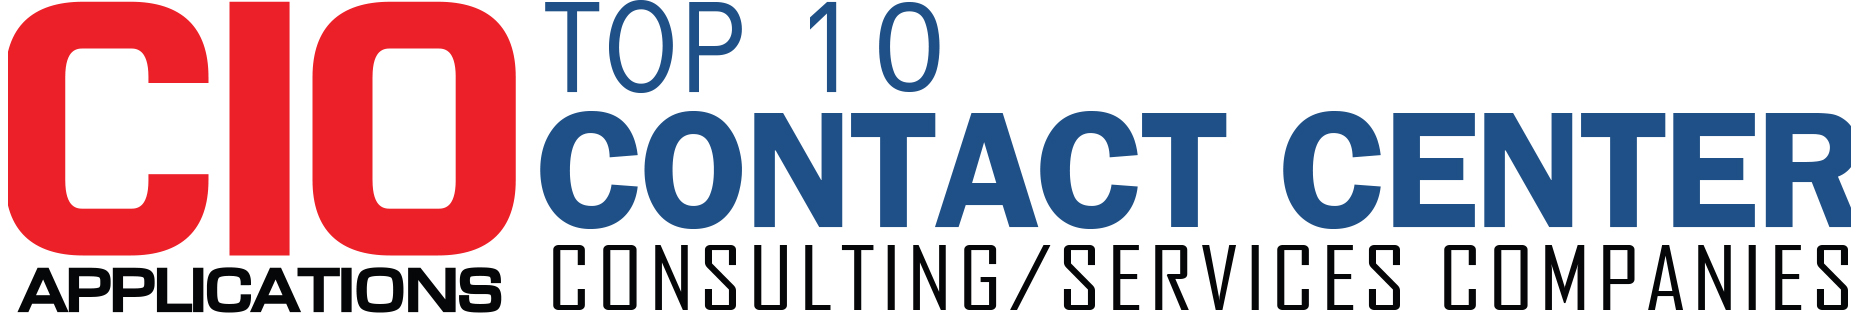 Top 10 Contact Center Consulting/Services Companies - 2019